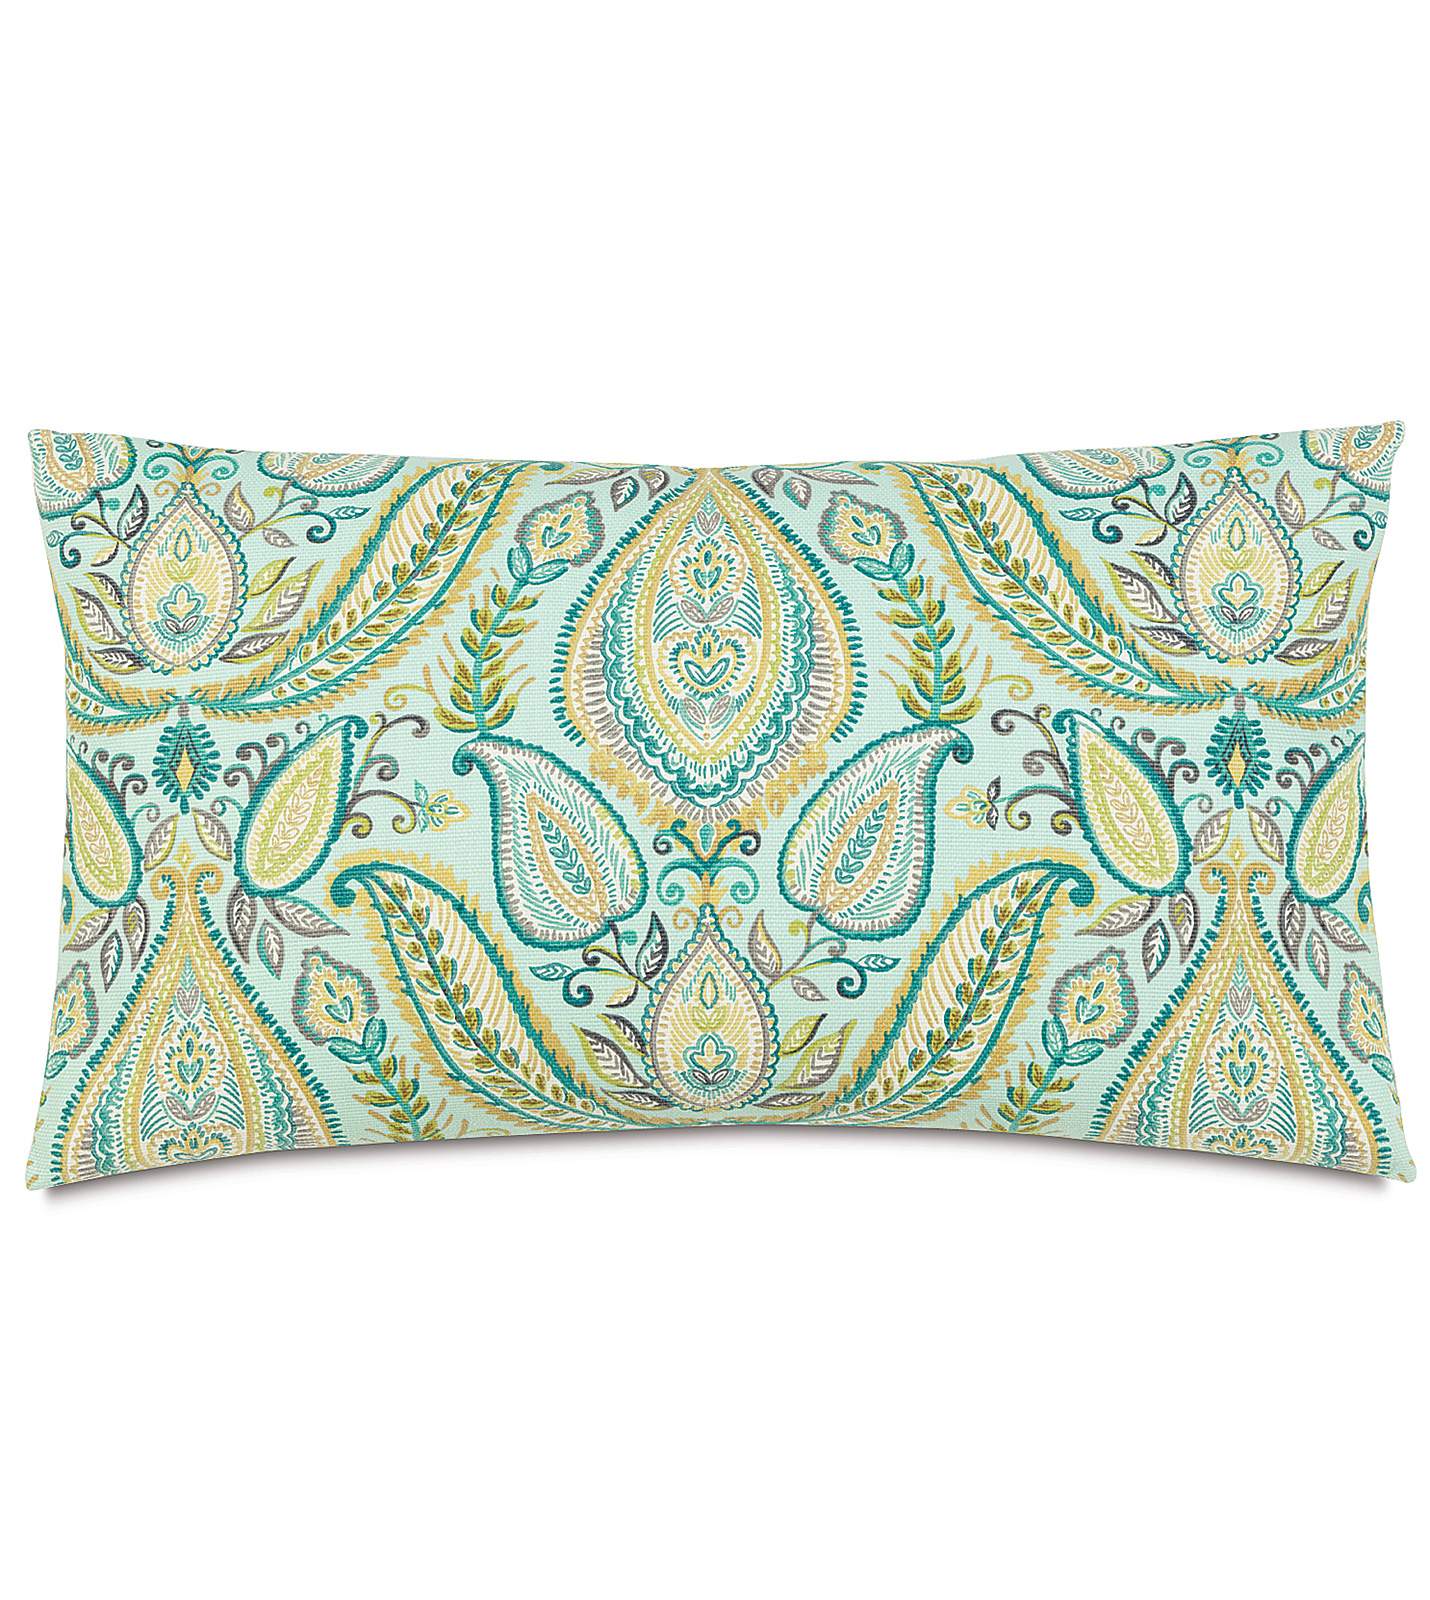 Decorative King Pillow Shams : Niche Luxury Bedding by Eastern Accents - Barrymore King Sham